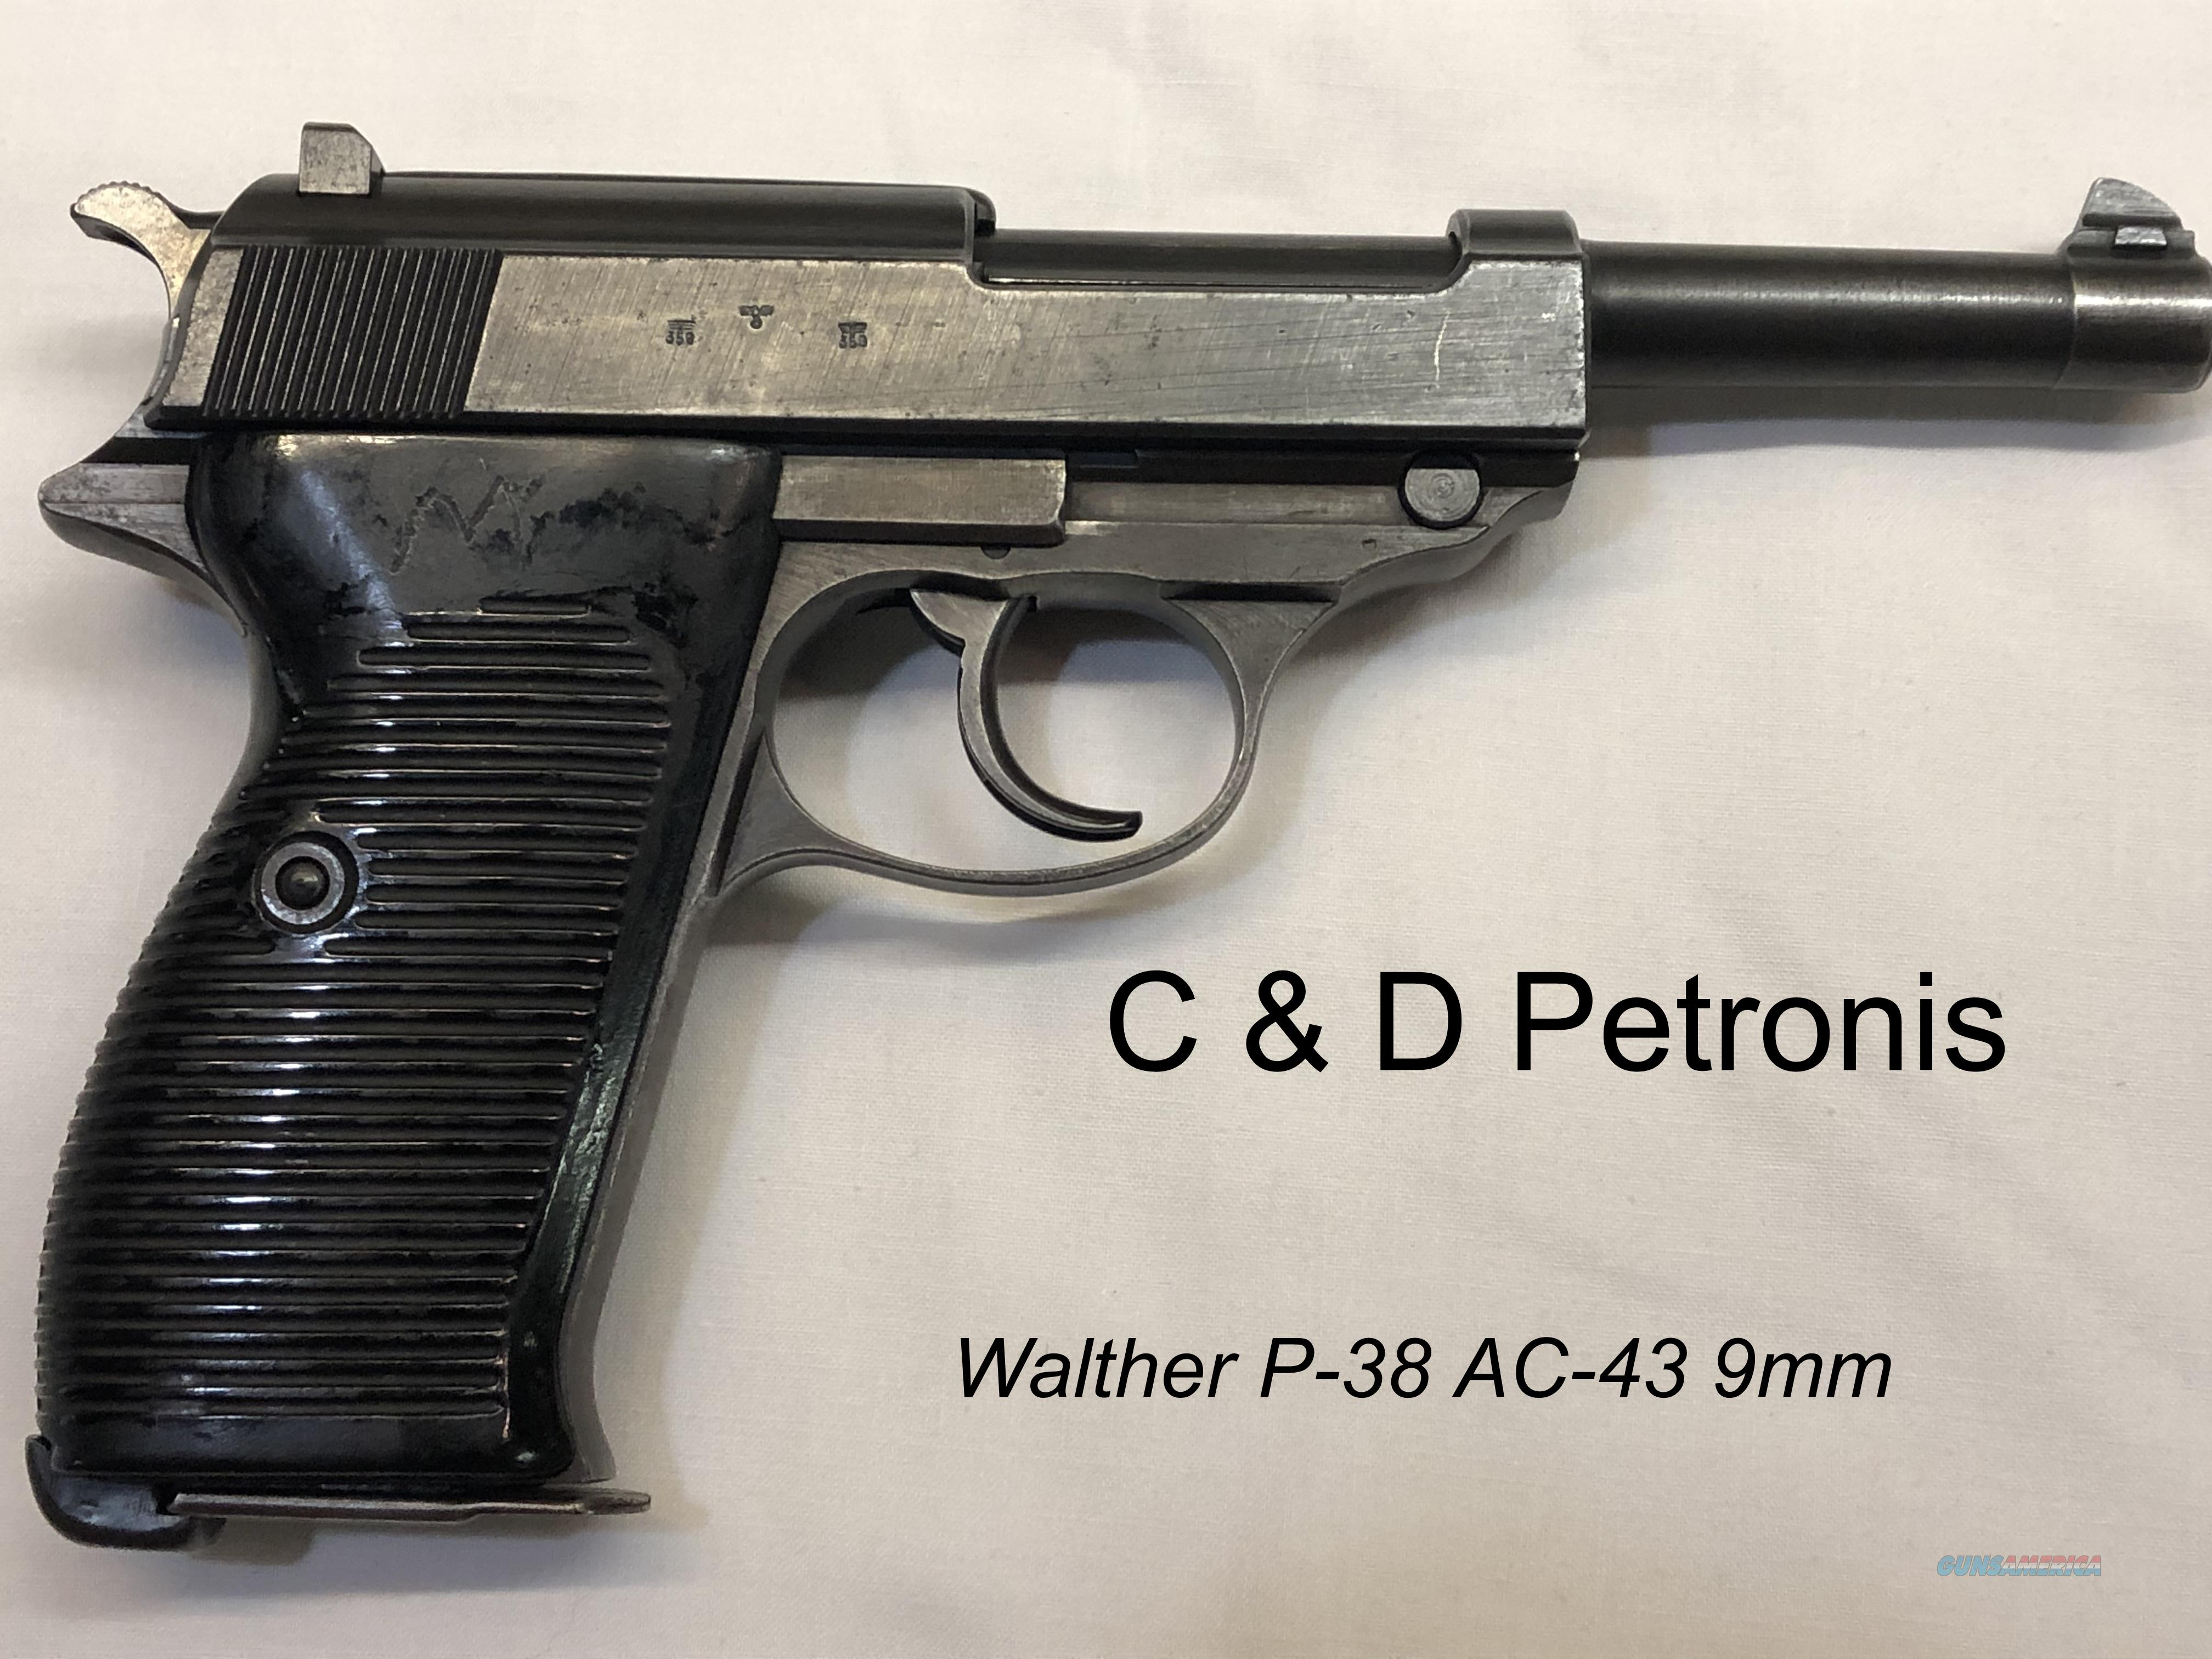 Walther P-38 WWII Pistol AC-43  Guns > Pistols > Walther Pistols > Pre-1945 > P-38